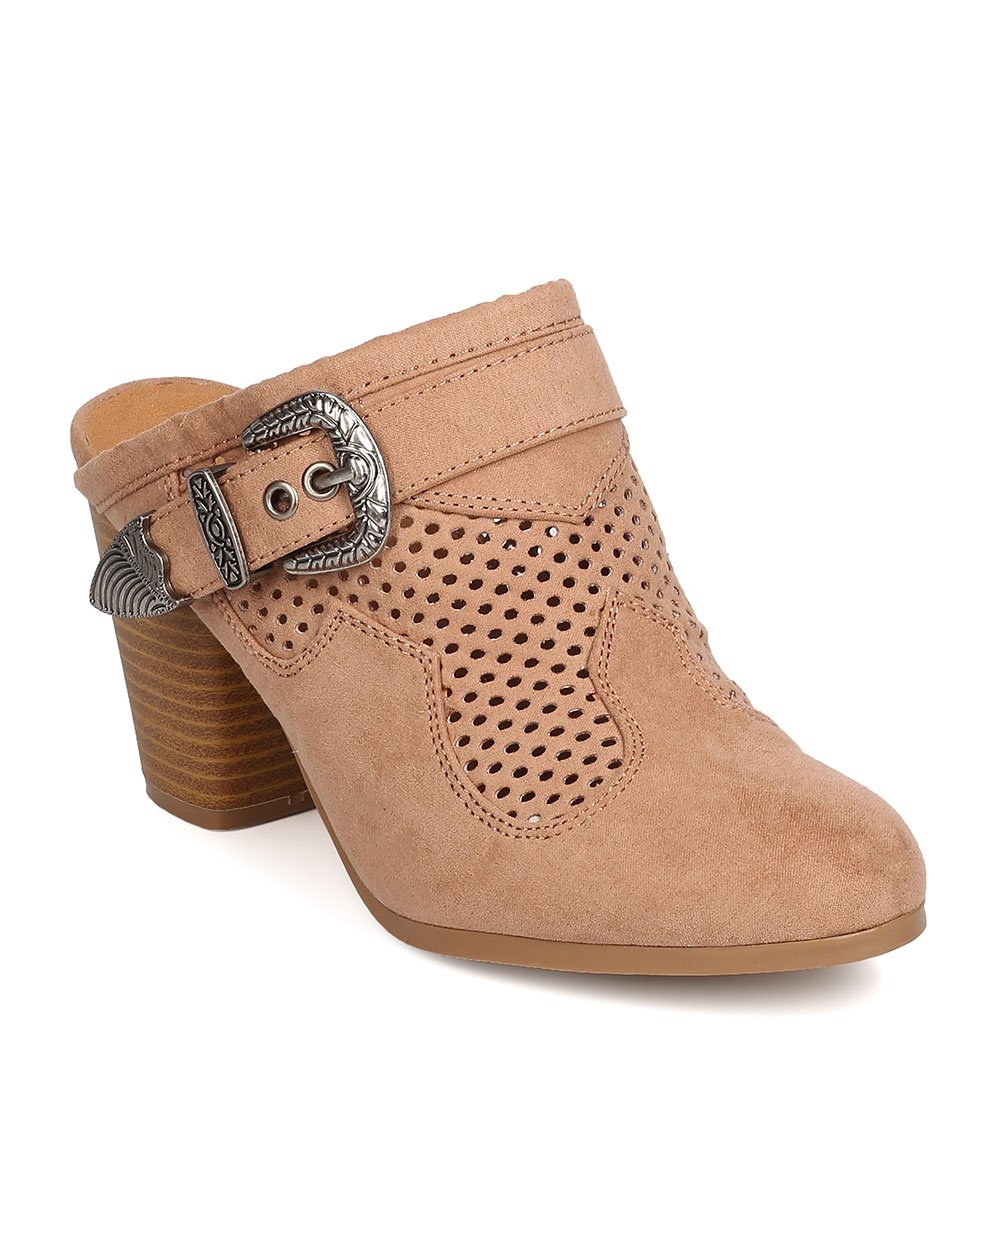 Qupid Women Faux Suede Perforated Buckled Chunky Heel Mule FD91 - Taupe (Size: 7.5) by Qupid (Image #1)